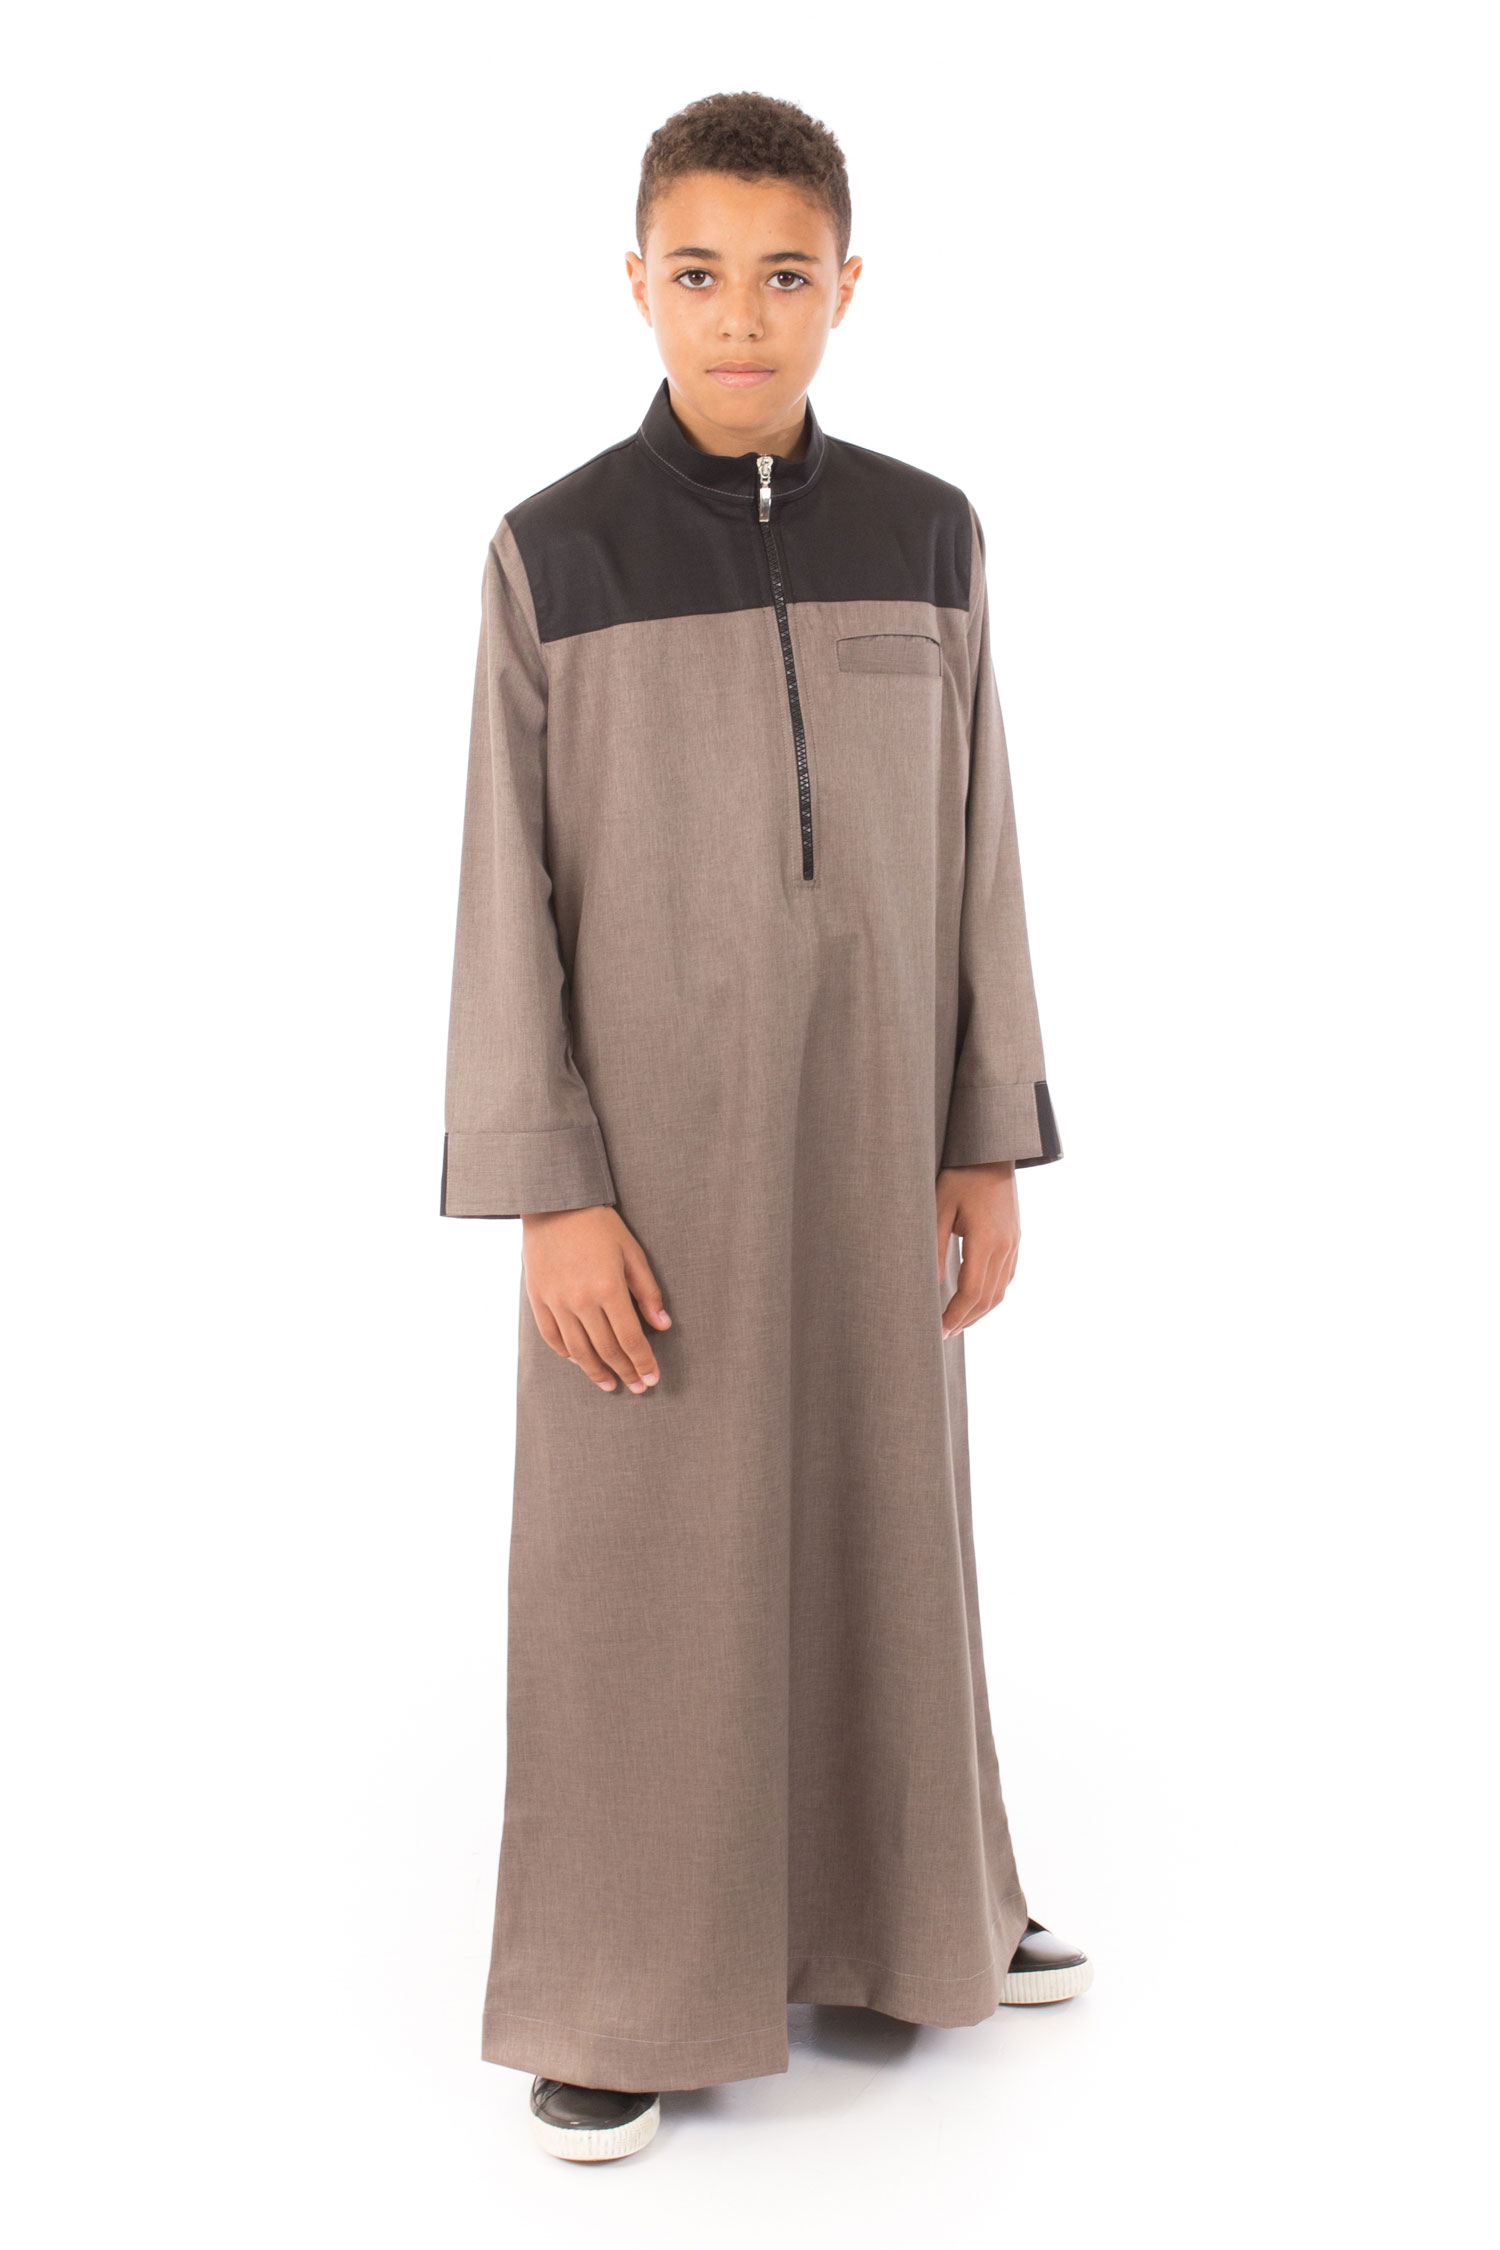 Gray - Black contrast Kids Islamic Jubba